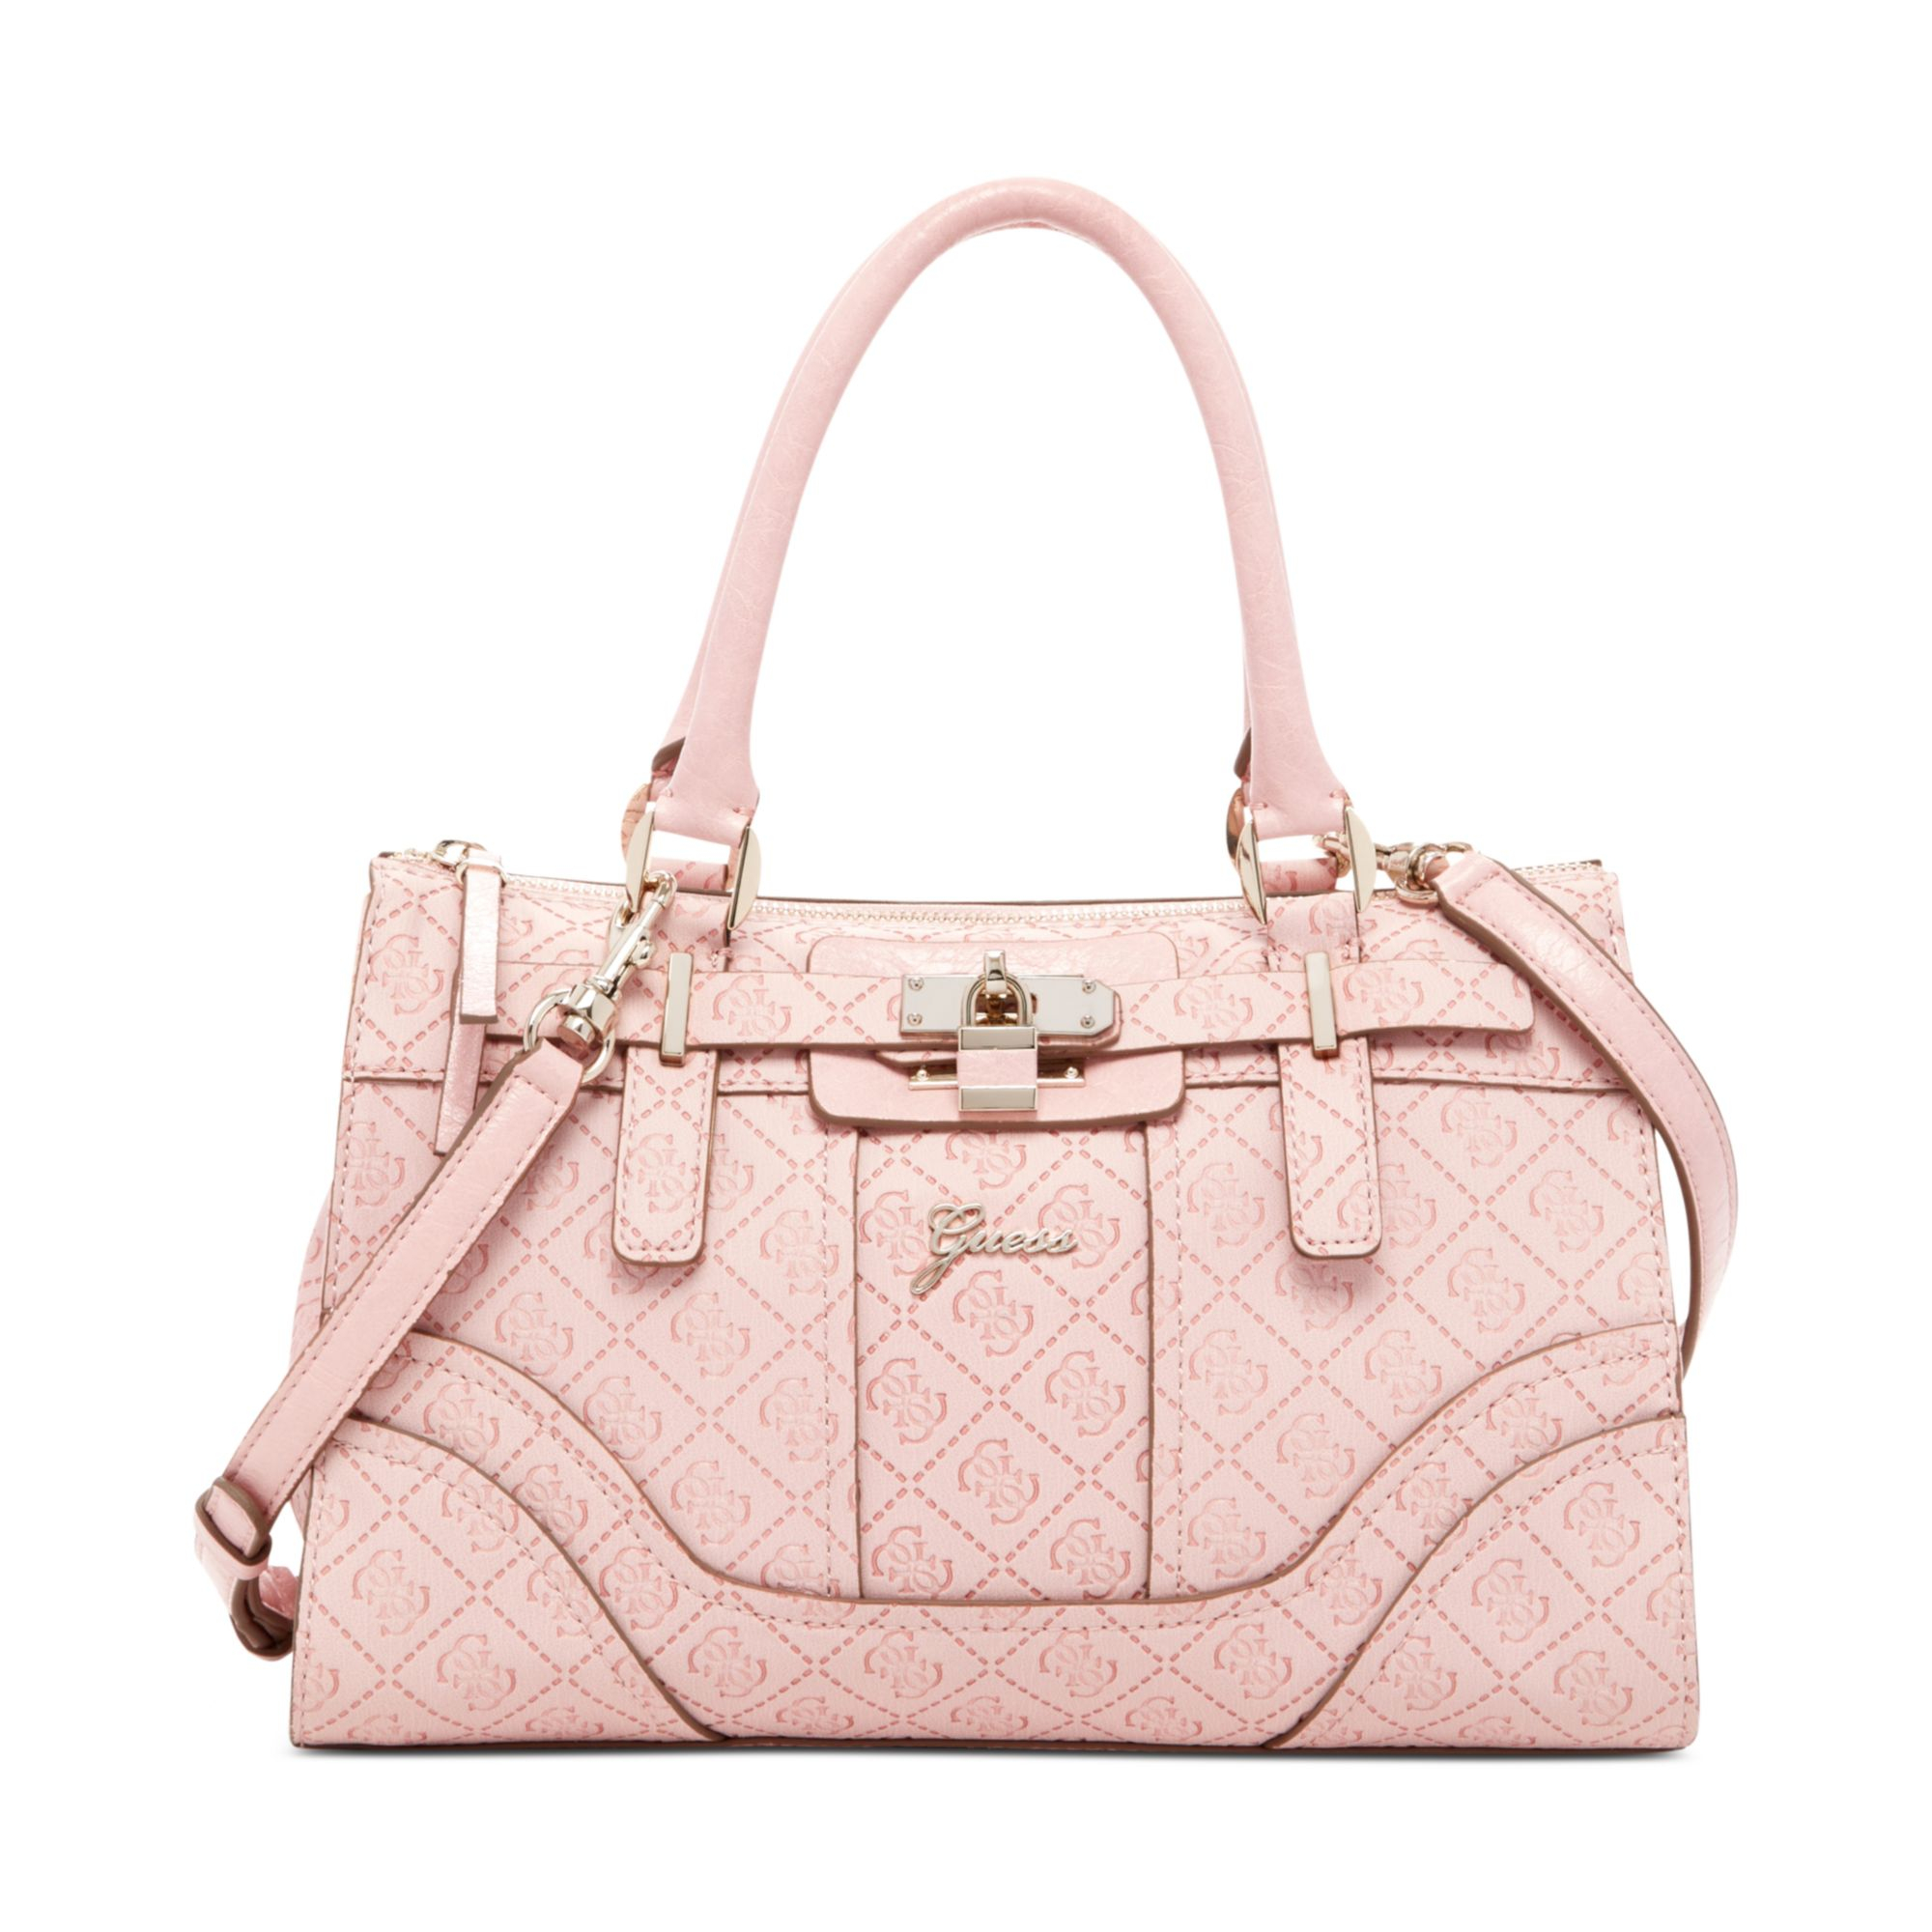 Pink Guess Purse With Bow Best Image Ccdbb